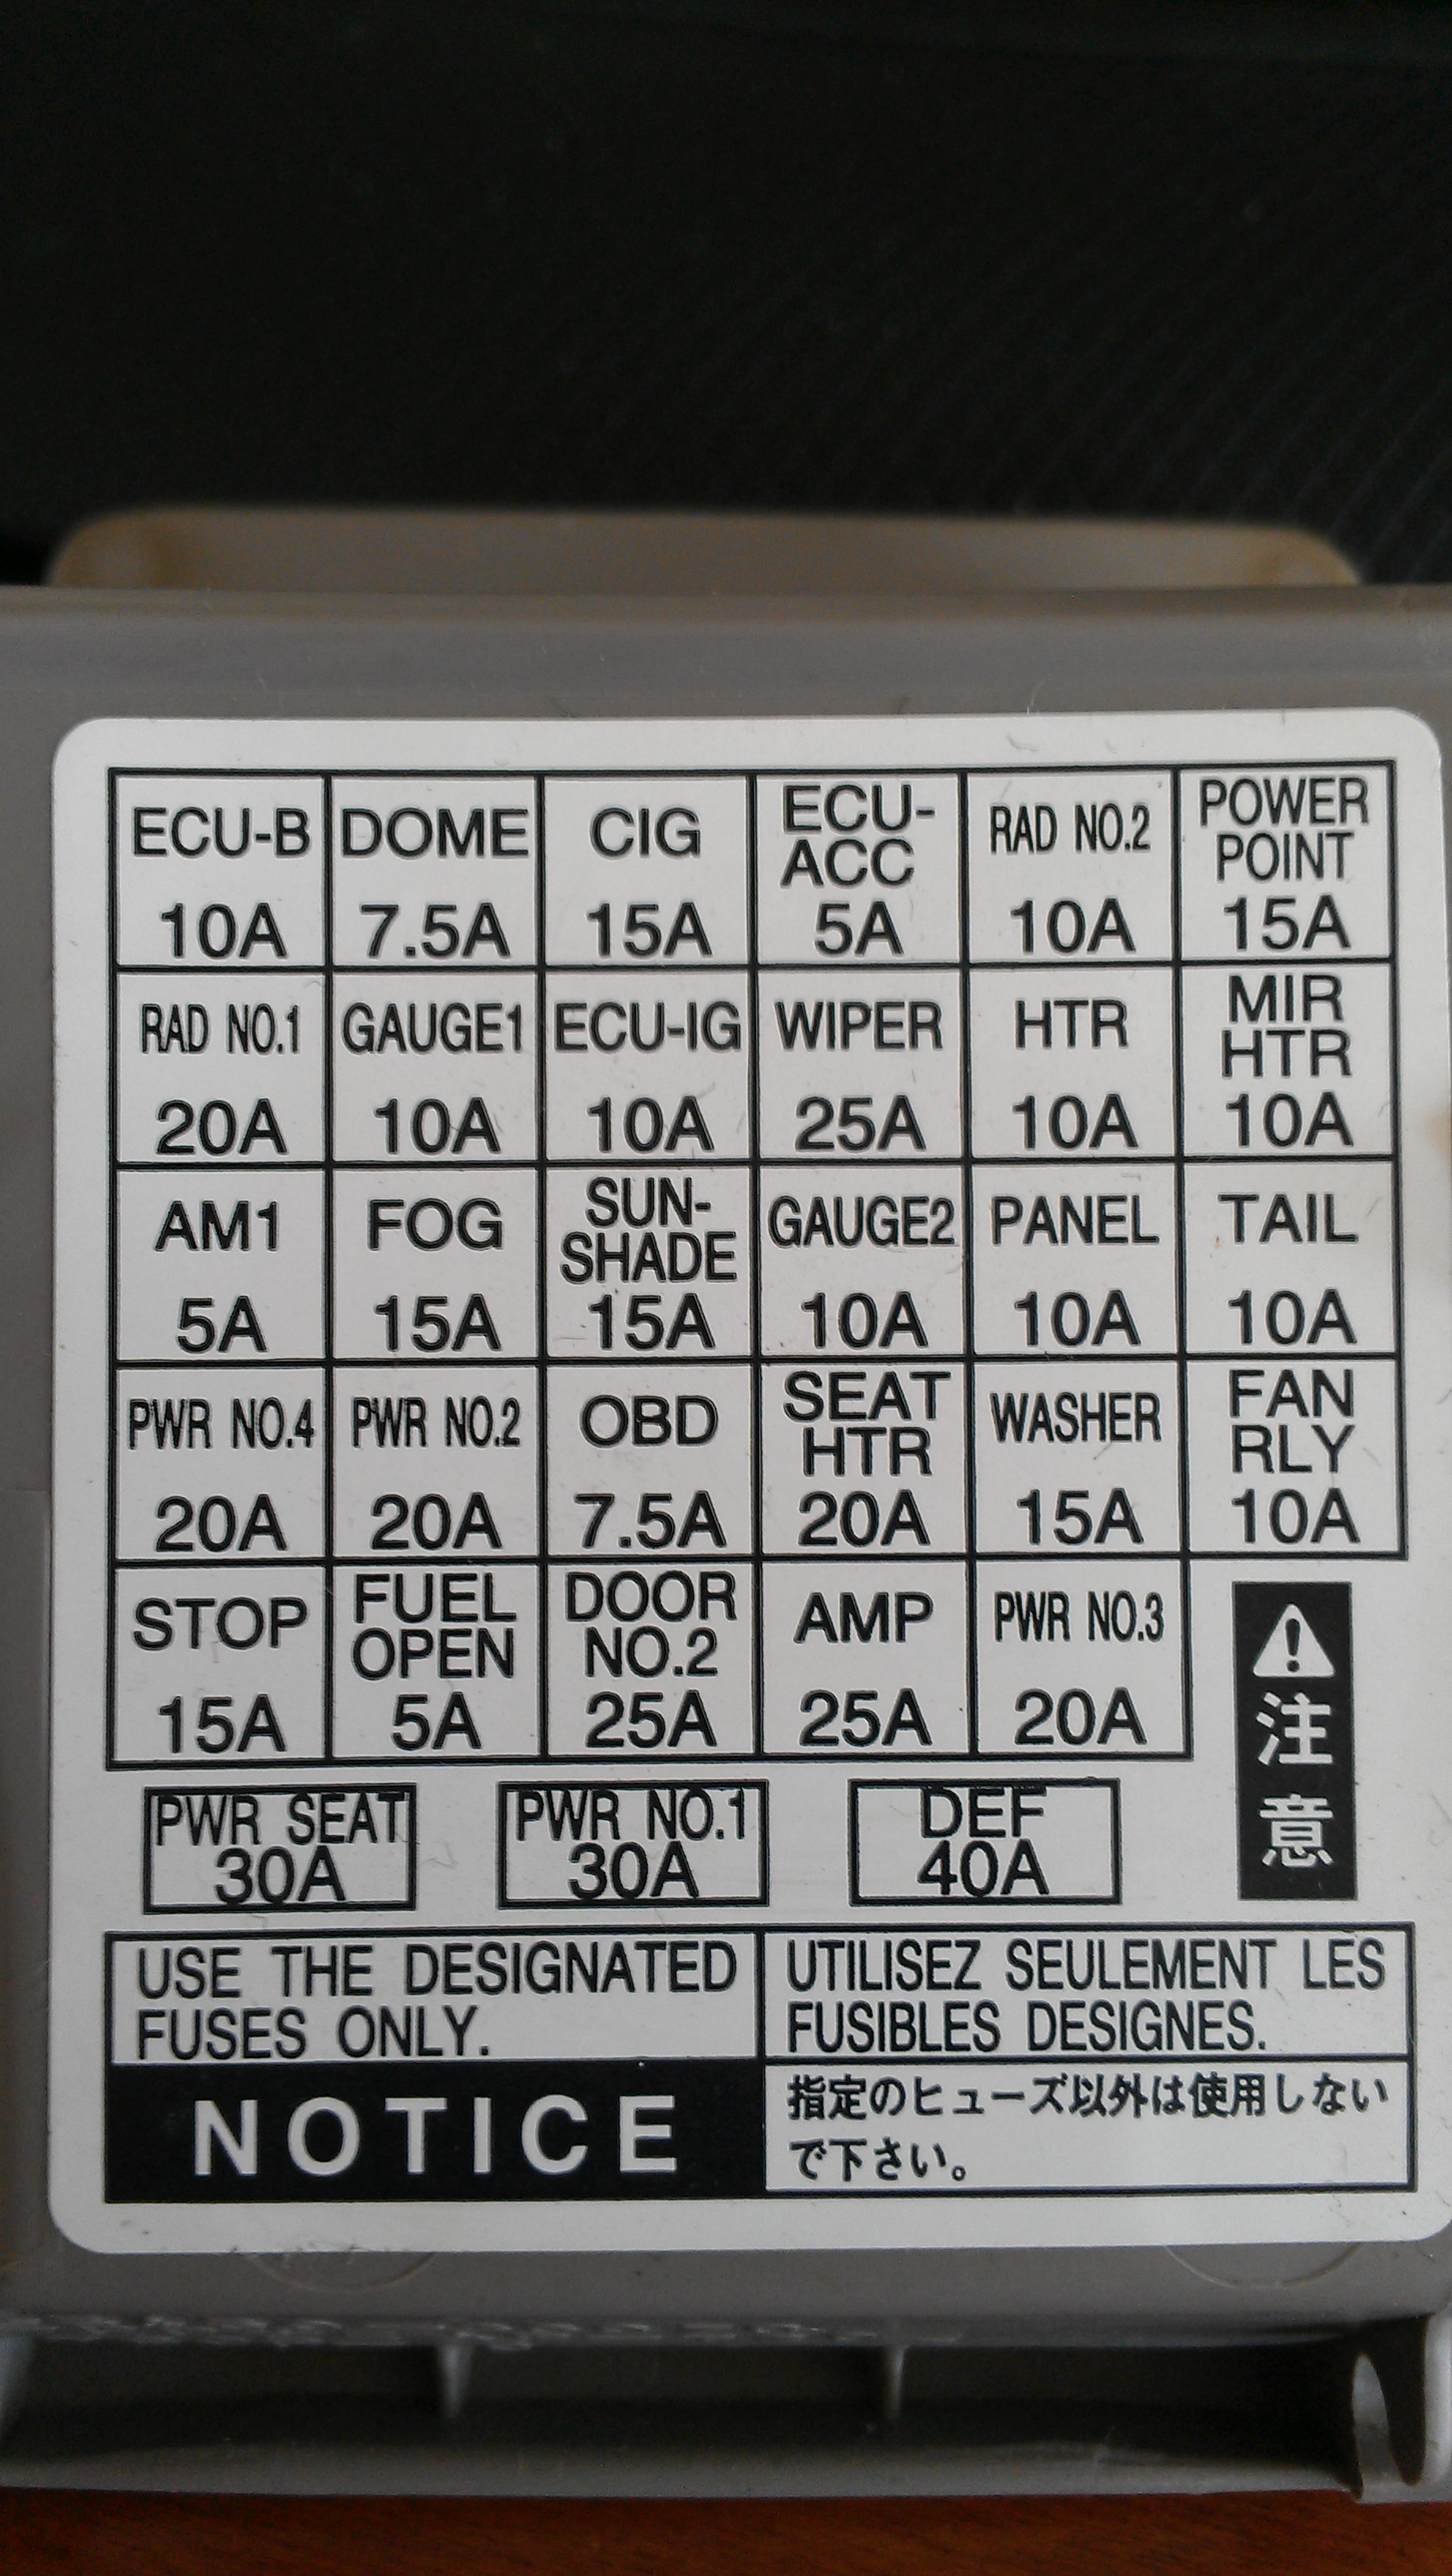 hight resolution of lexus es330 fuse box diagram wiring diagram schematics lexus hs250h fuse box in 2004 lexus is300